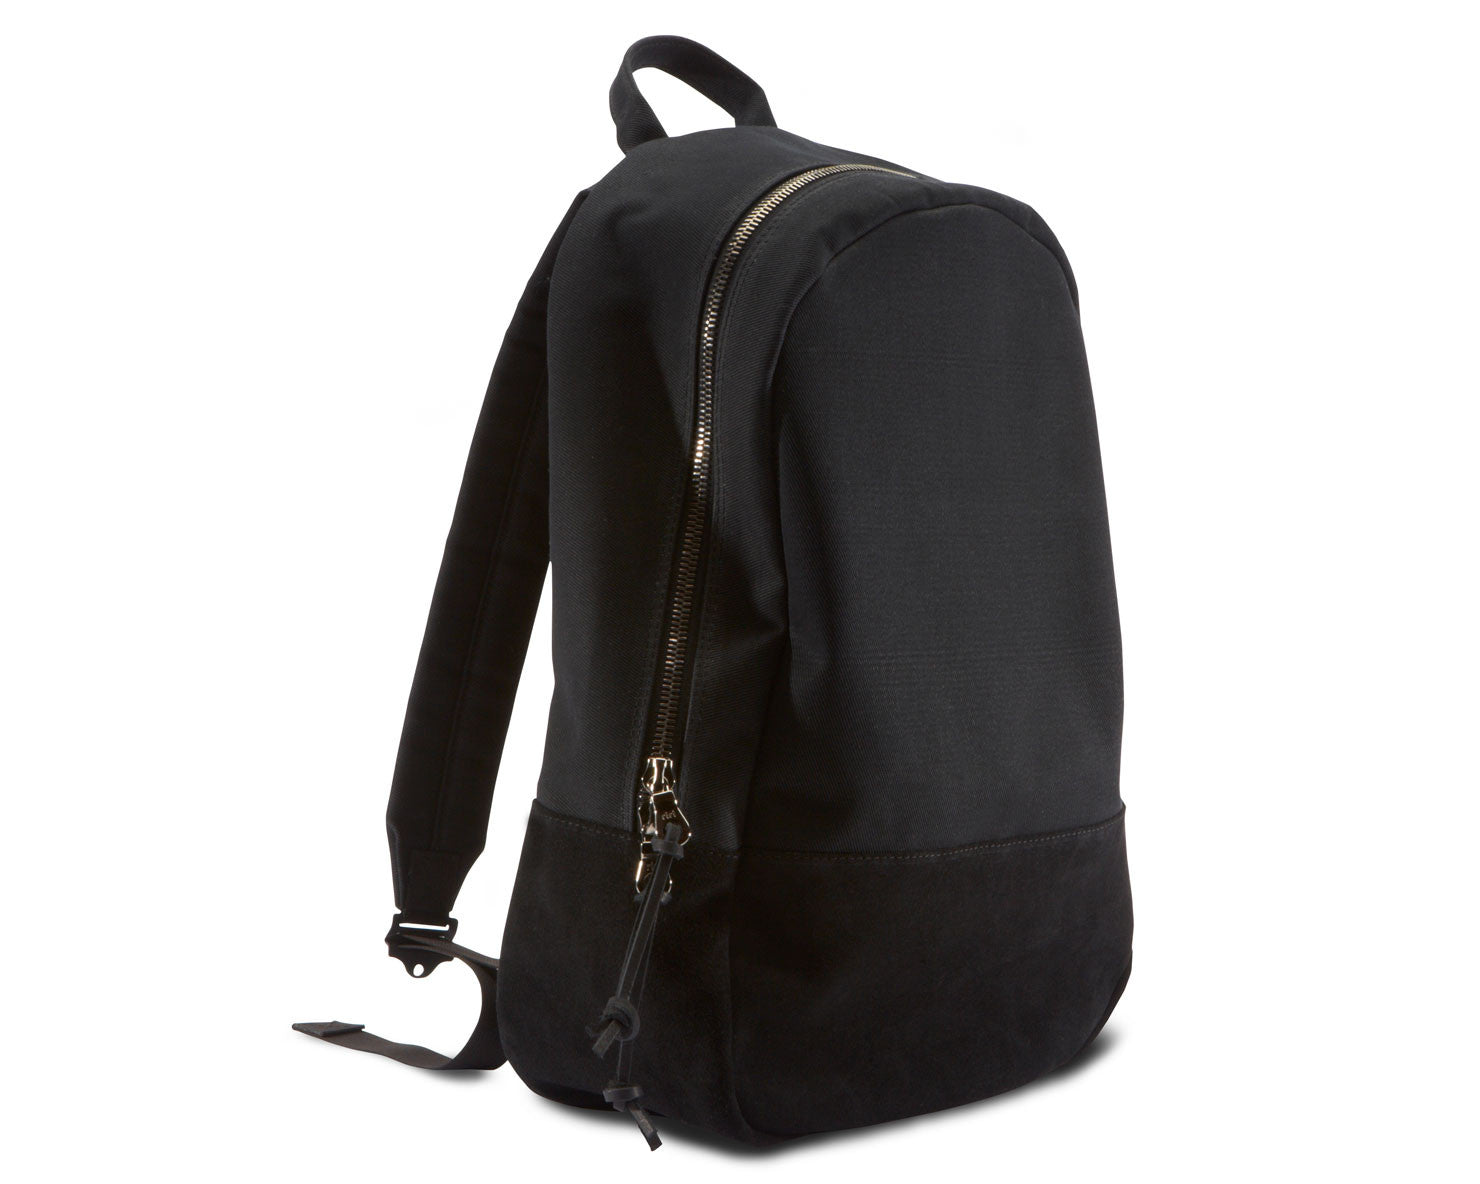 DAYPACK | KILLSPENCER® - Original Wax Black Canvas